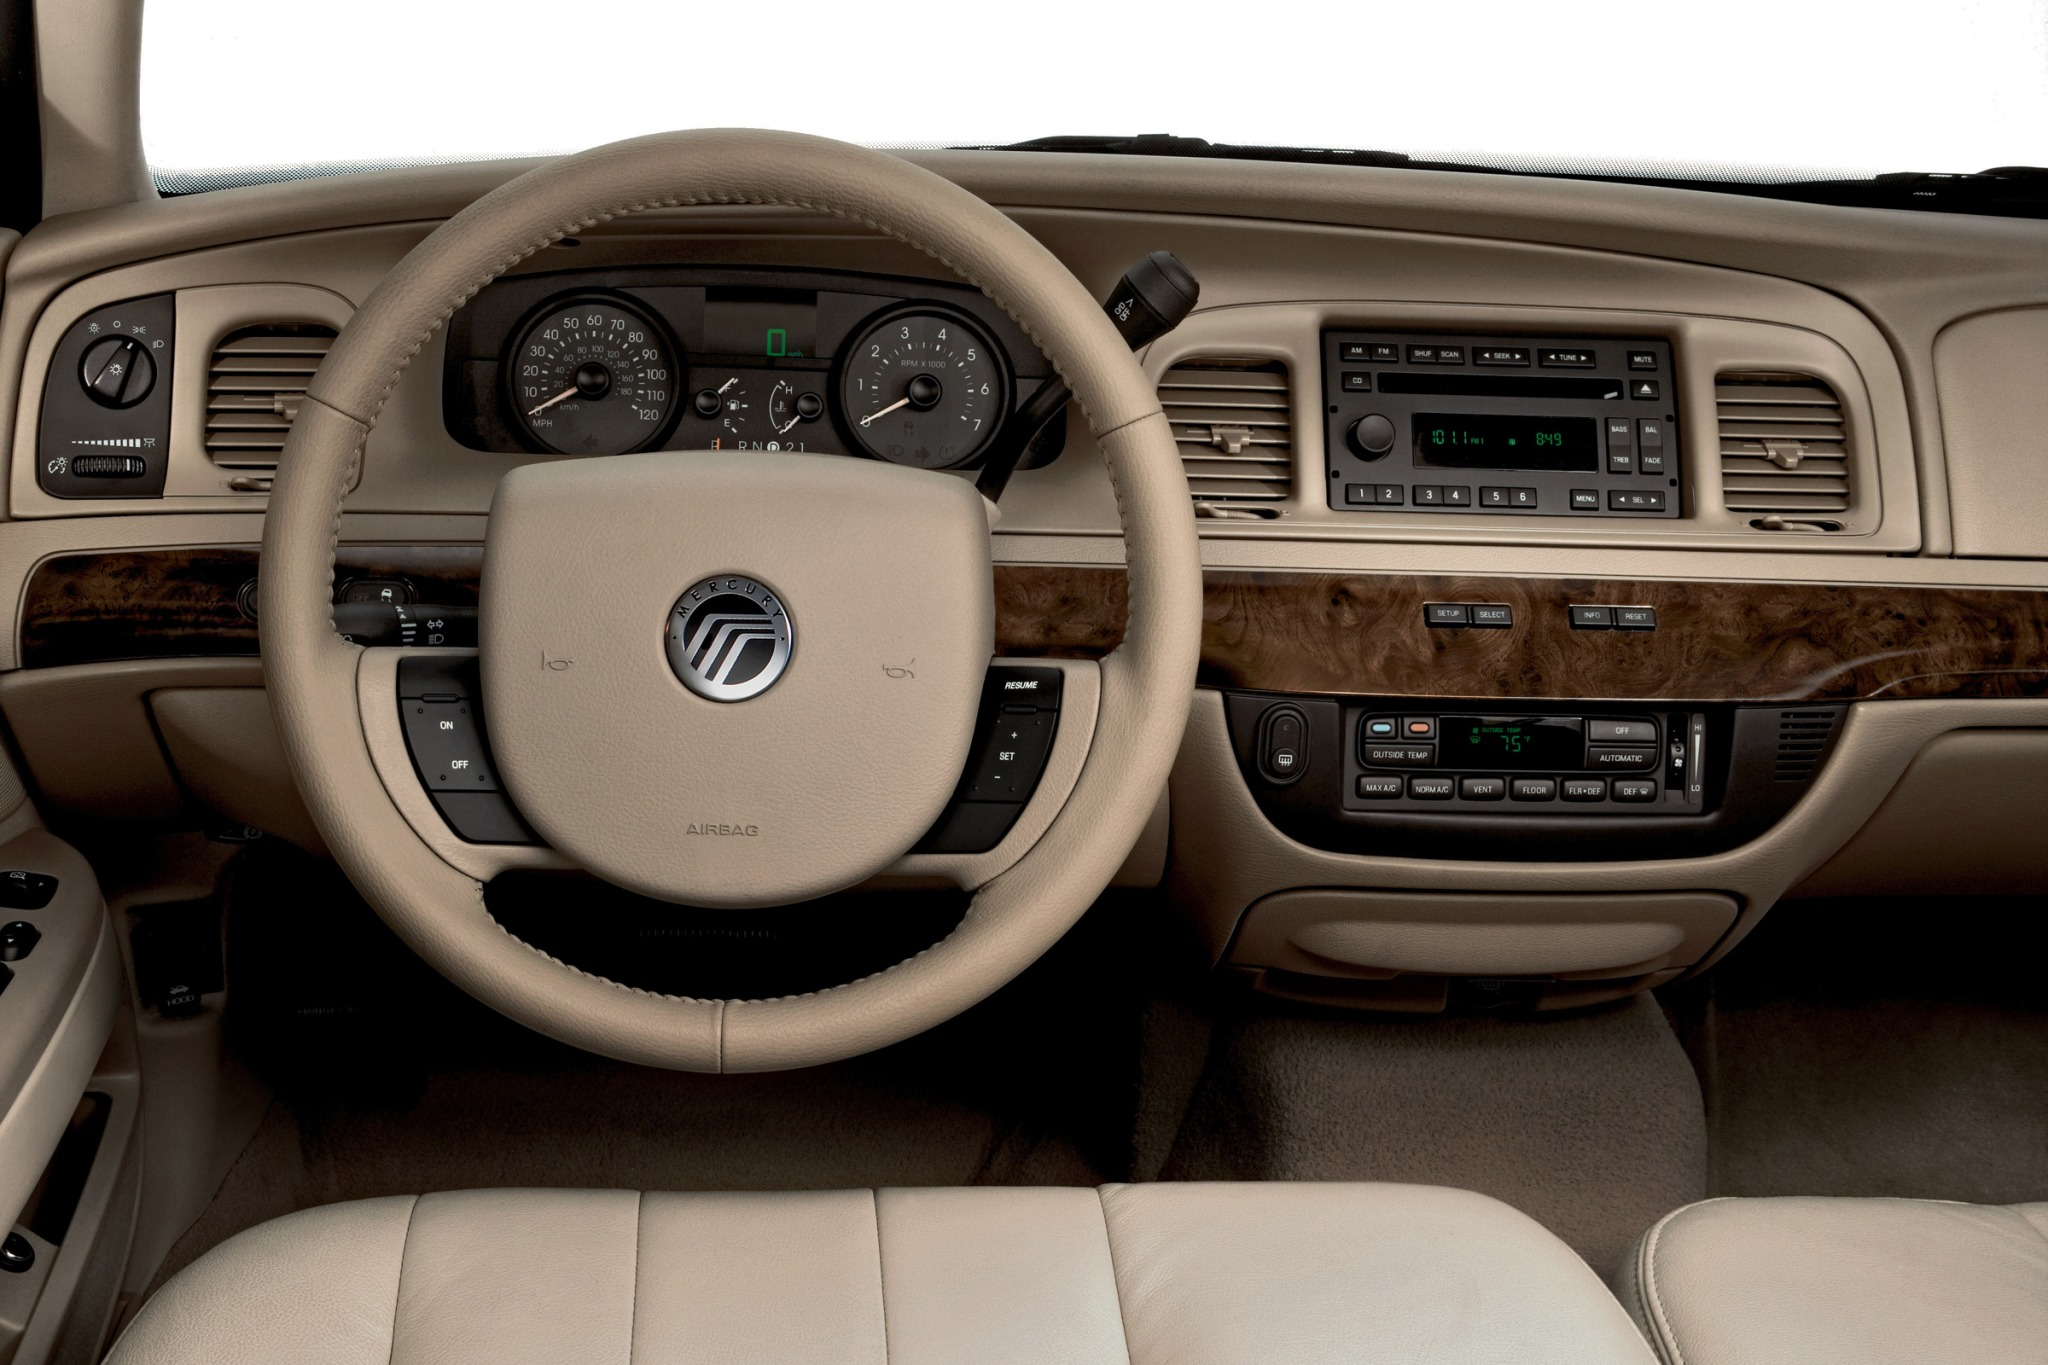 2007 Mercury Grand Marqui exterior #7